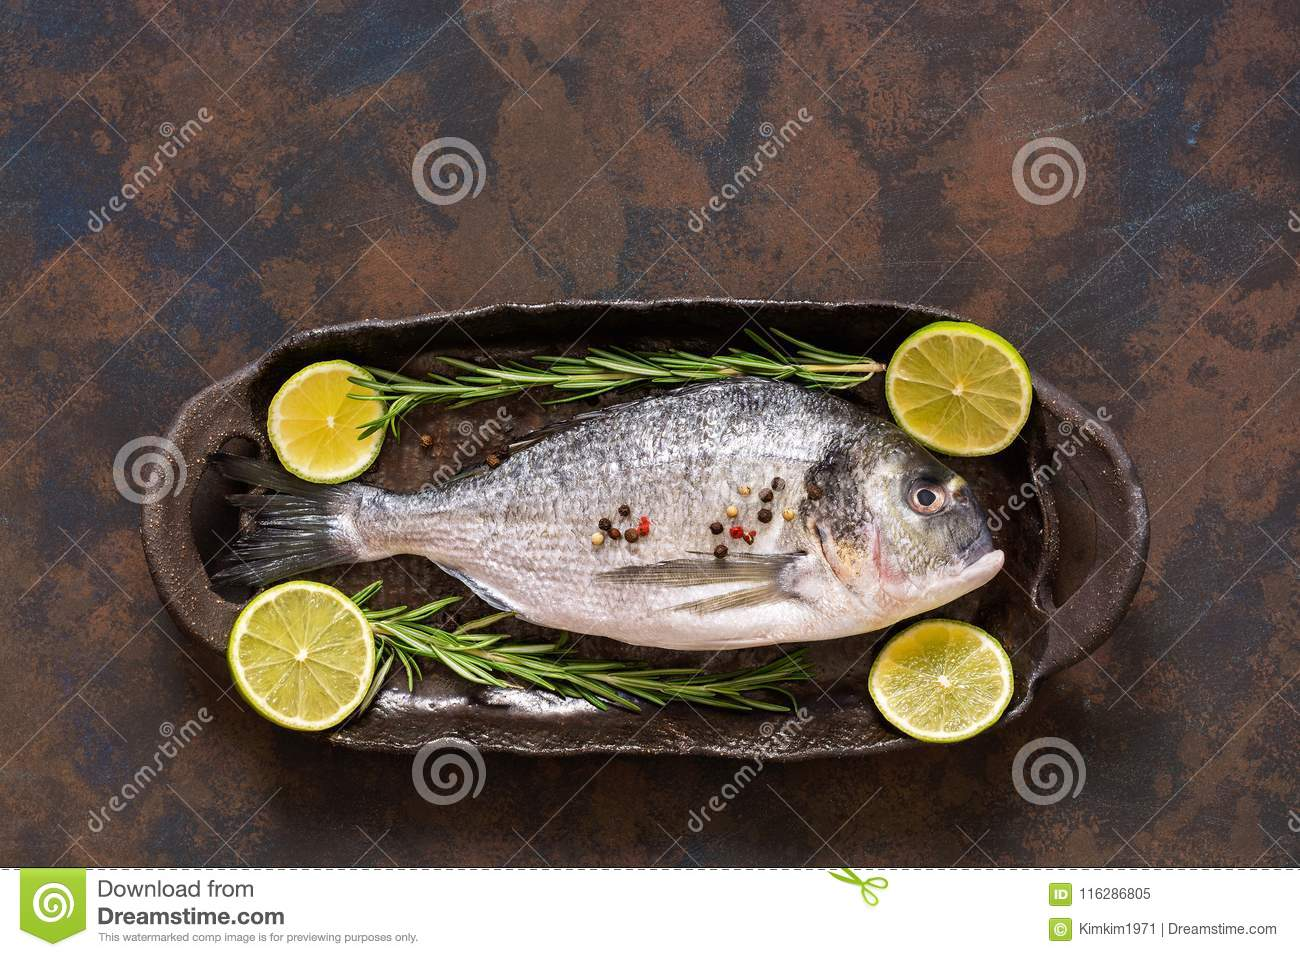 Raw fresh fish with lime slices and rosemary. A top view, a place for your text or advertising.